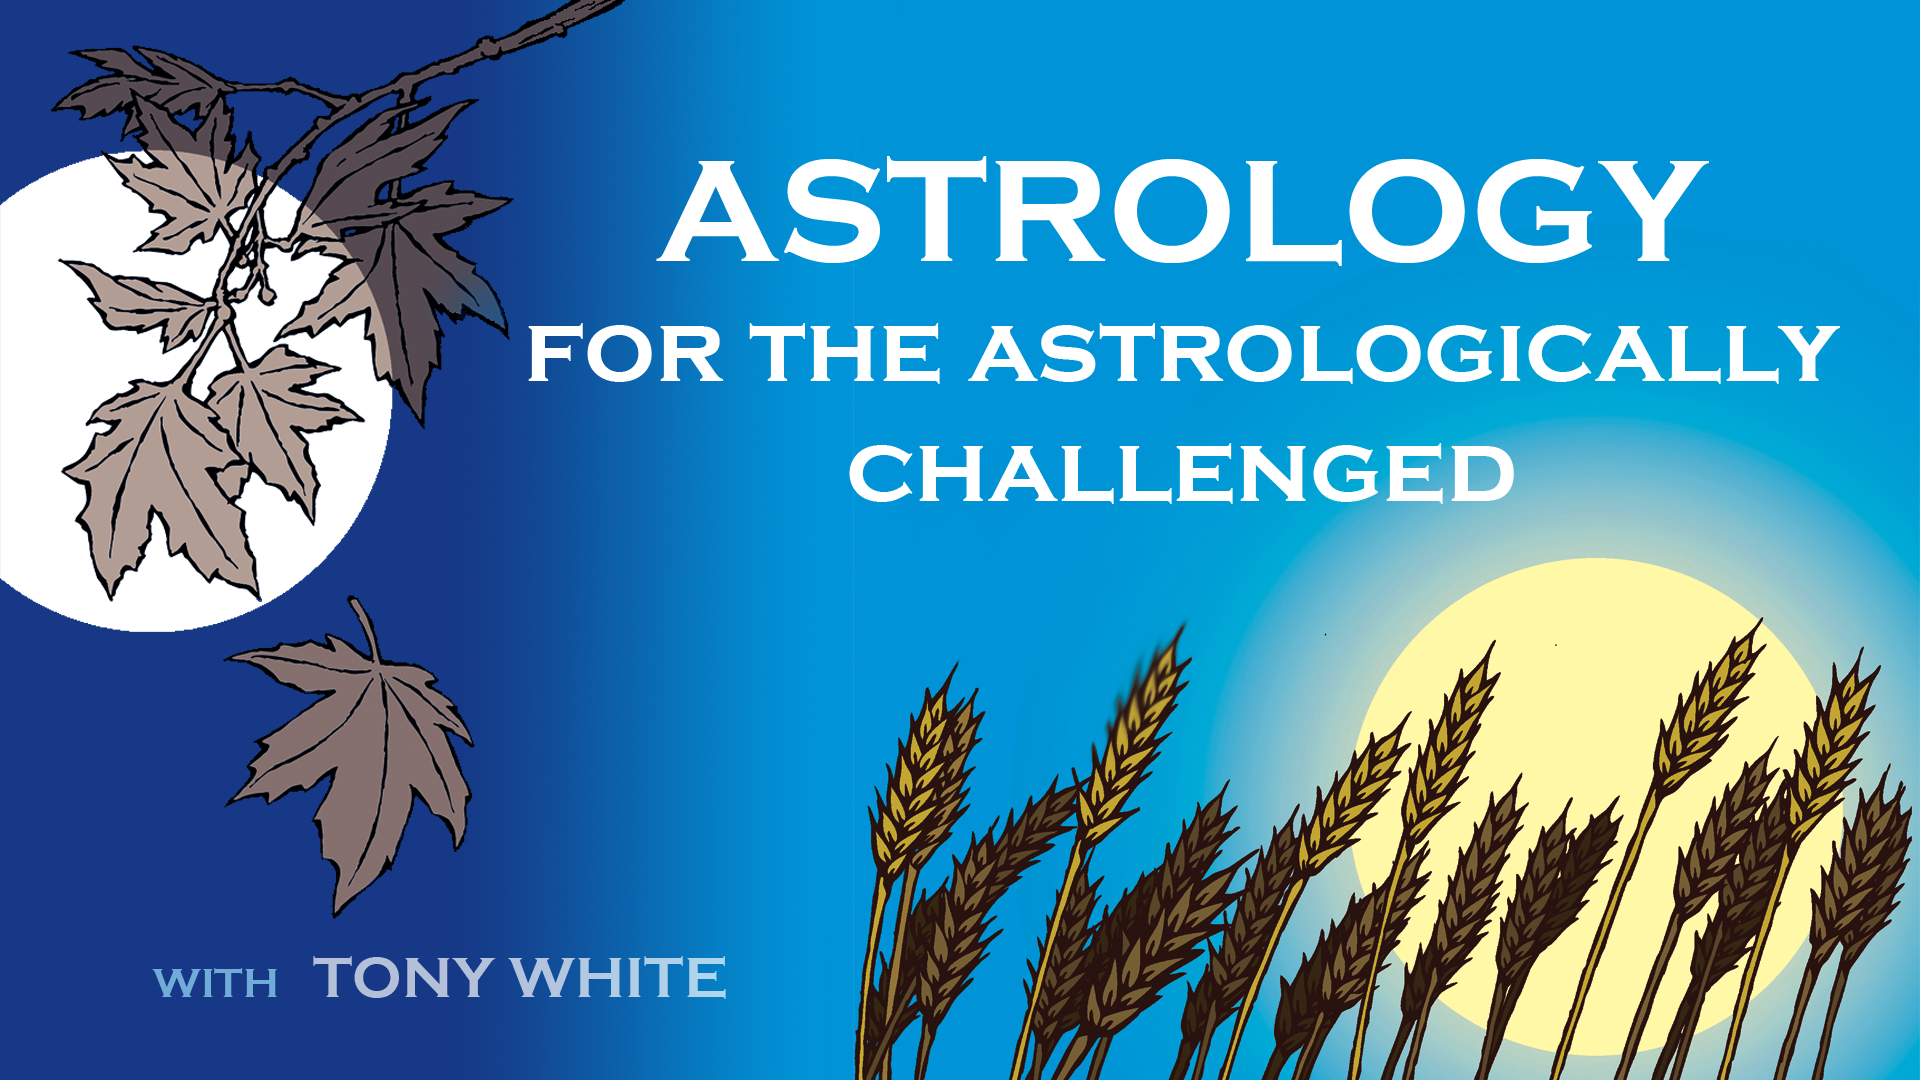 Astrology Challenged